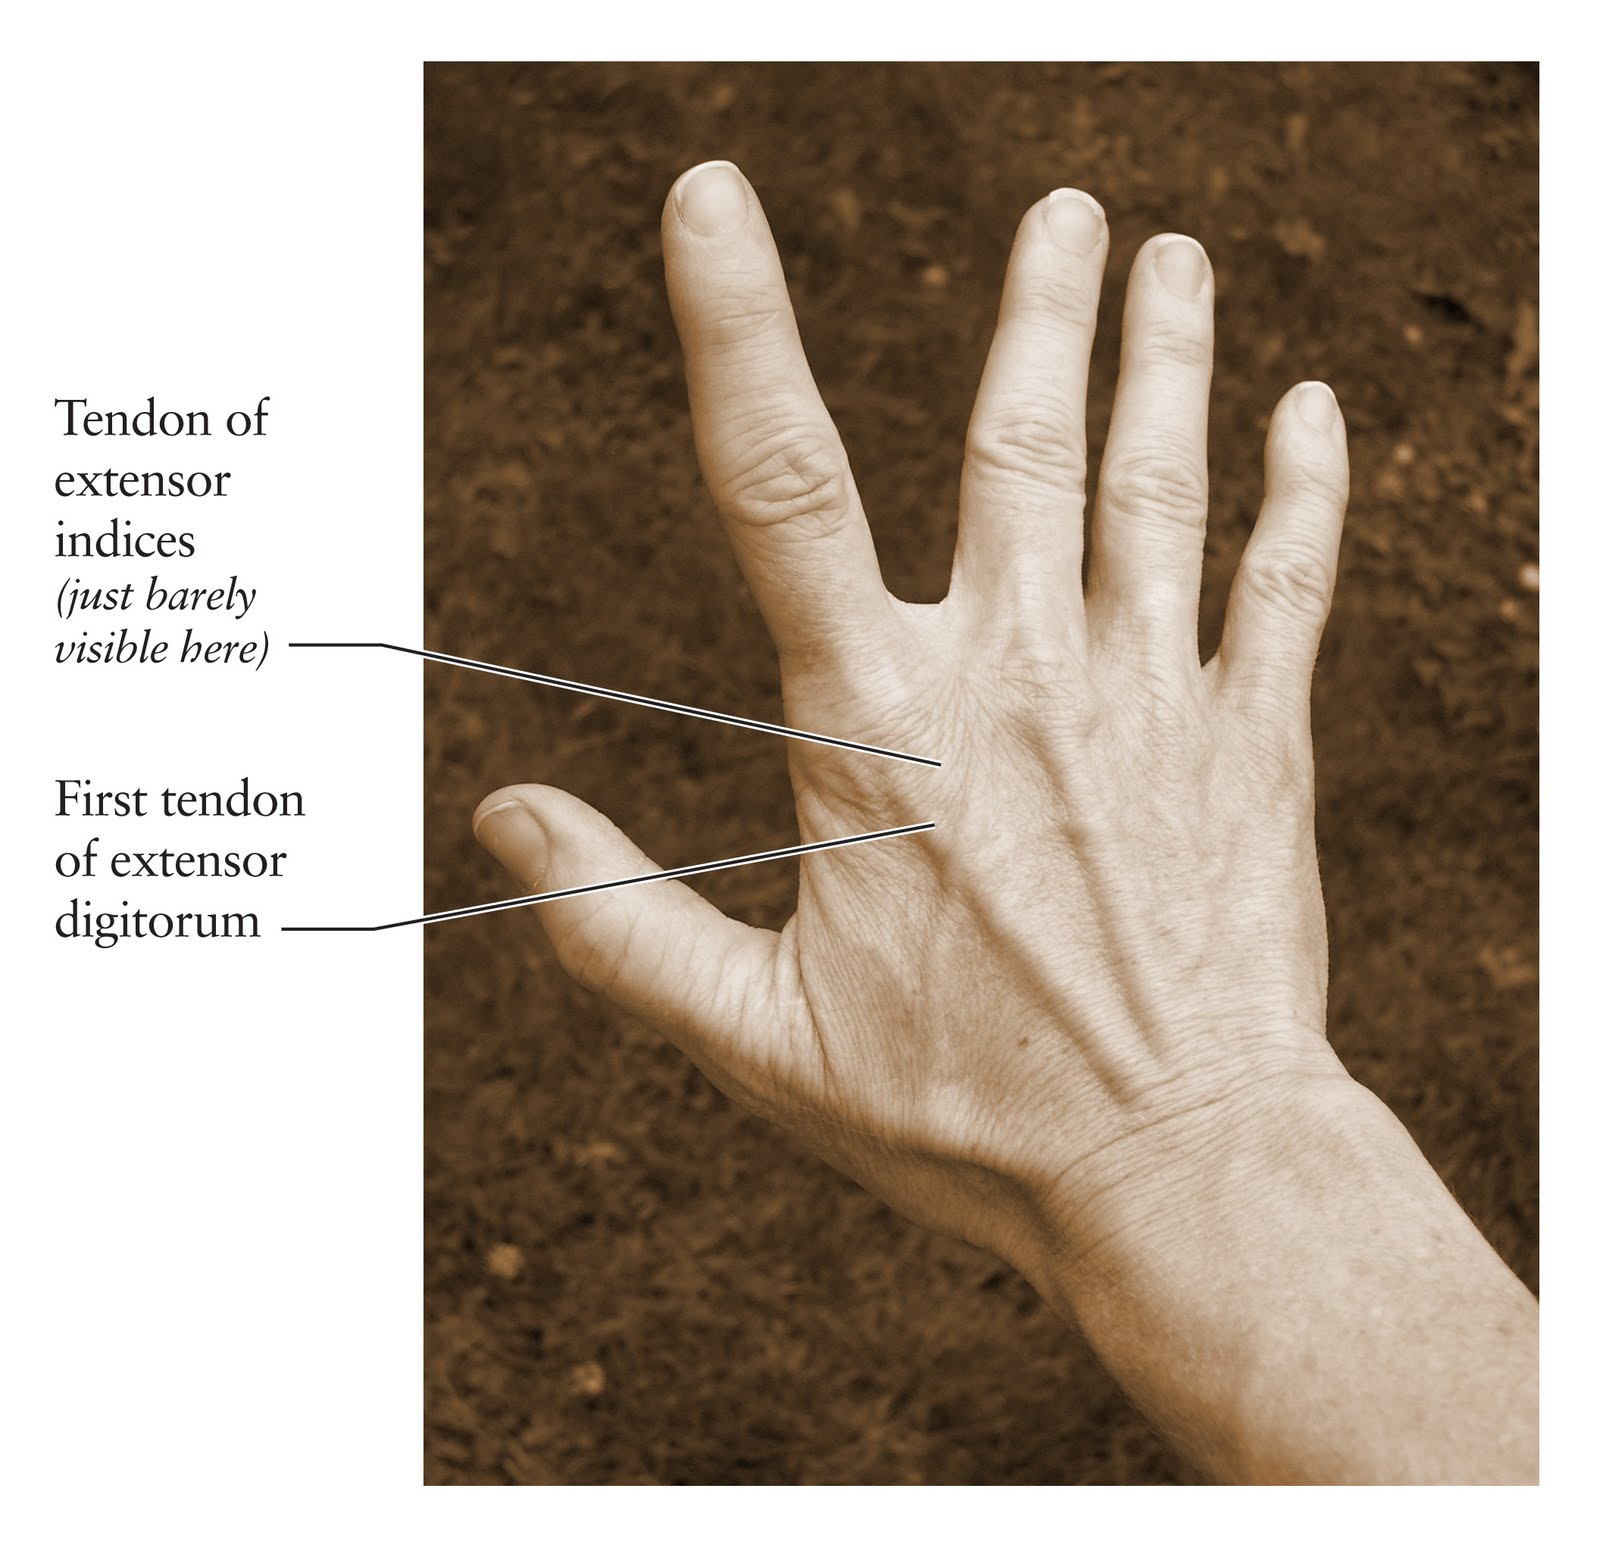 Finger, Hand, and Wrist Problems, Noninjury